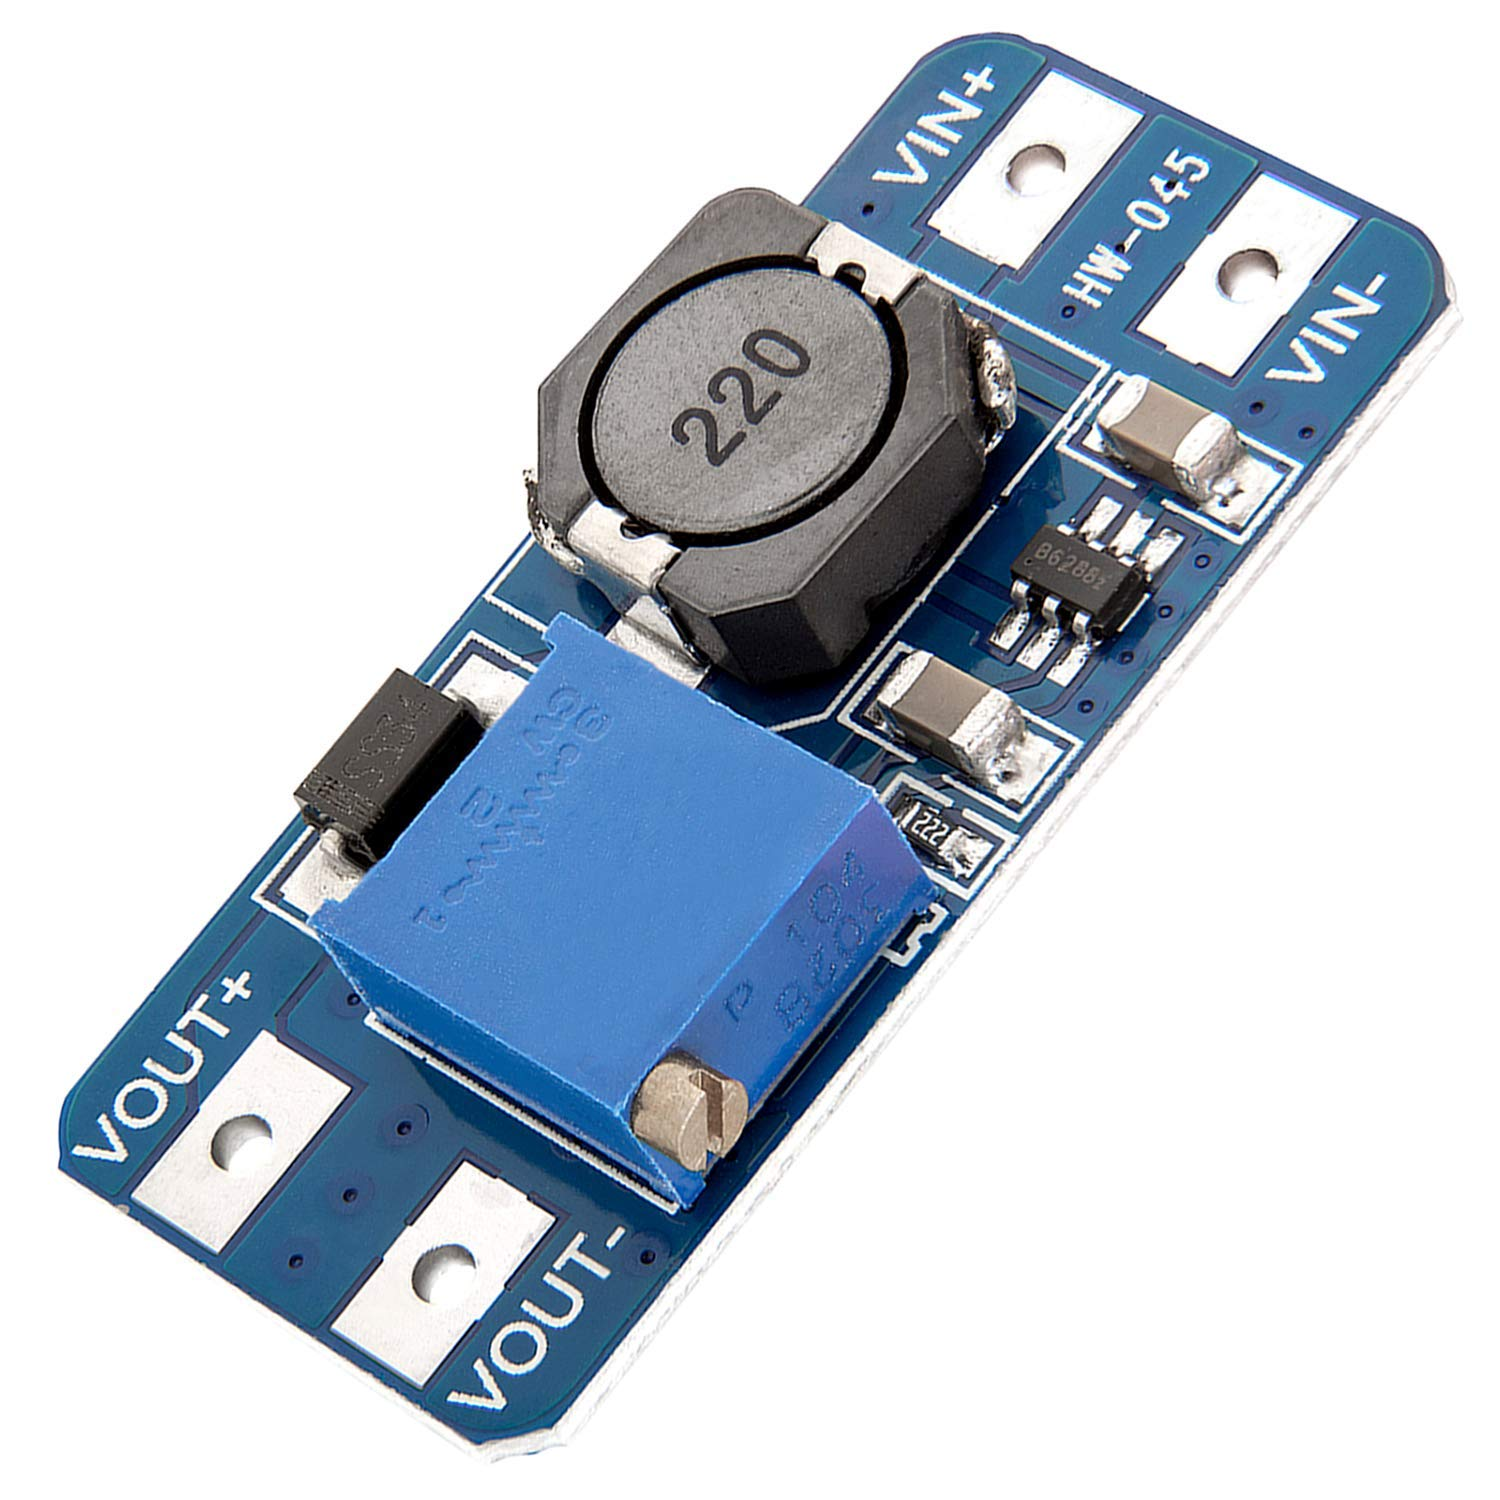 Azdelivery Mt3608 Dc Dc Power Supply Adapter Step Up Module Compatible With Arduino Including Ebook Business Industry Science